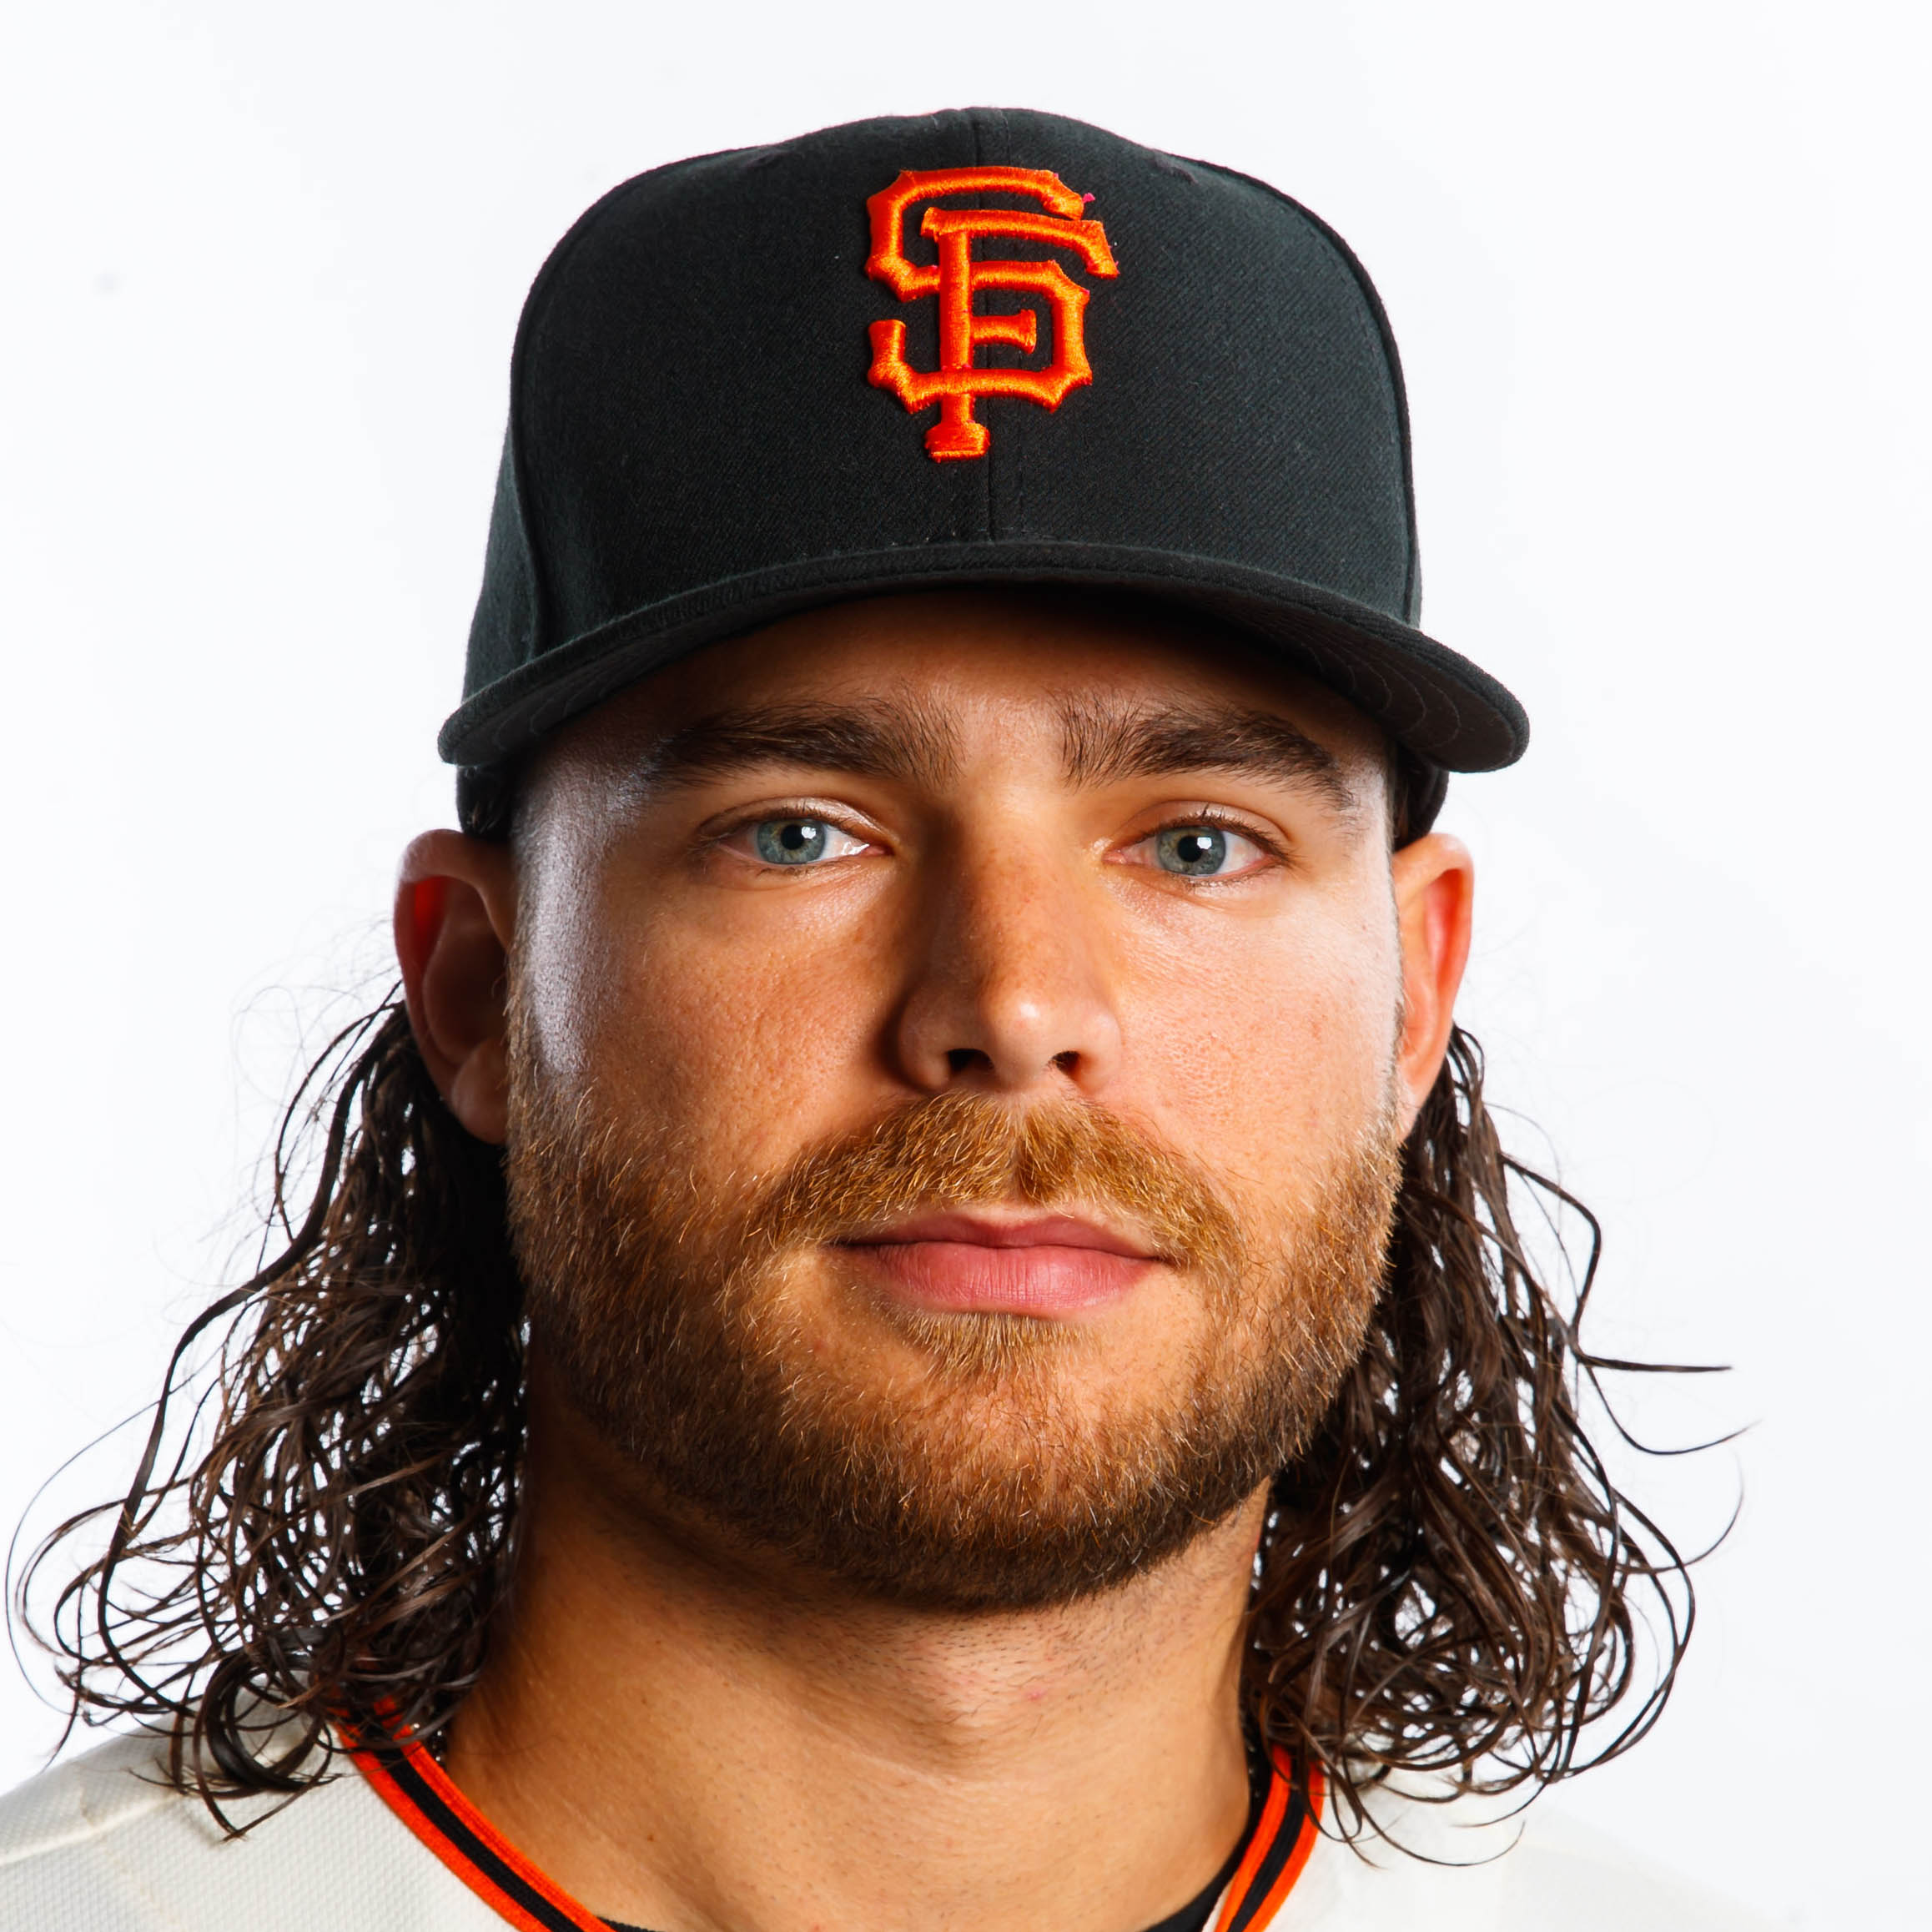 Brandon Crawford (L) Headshot